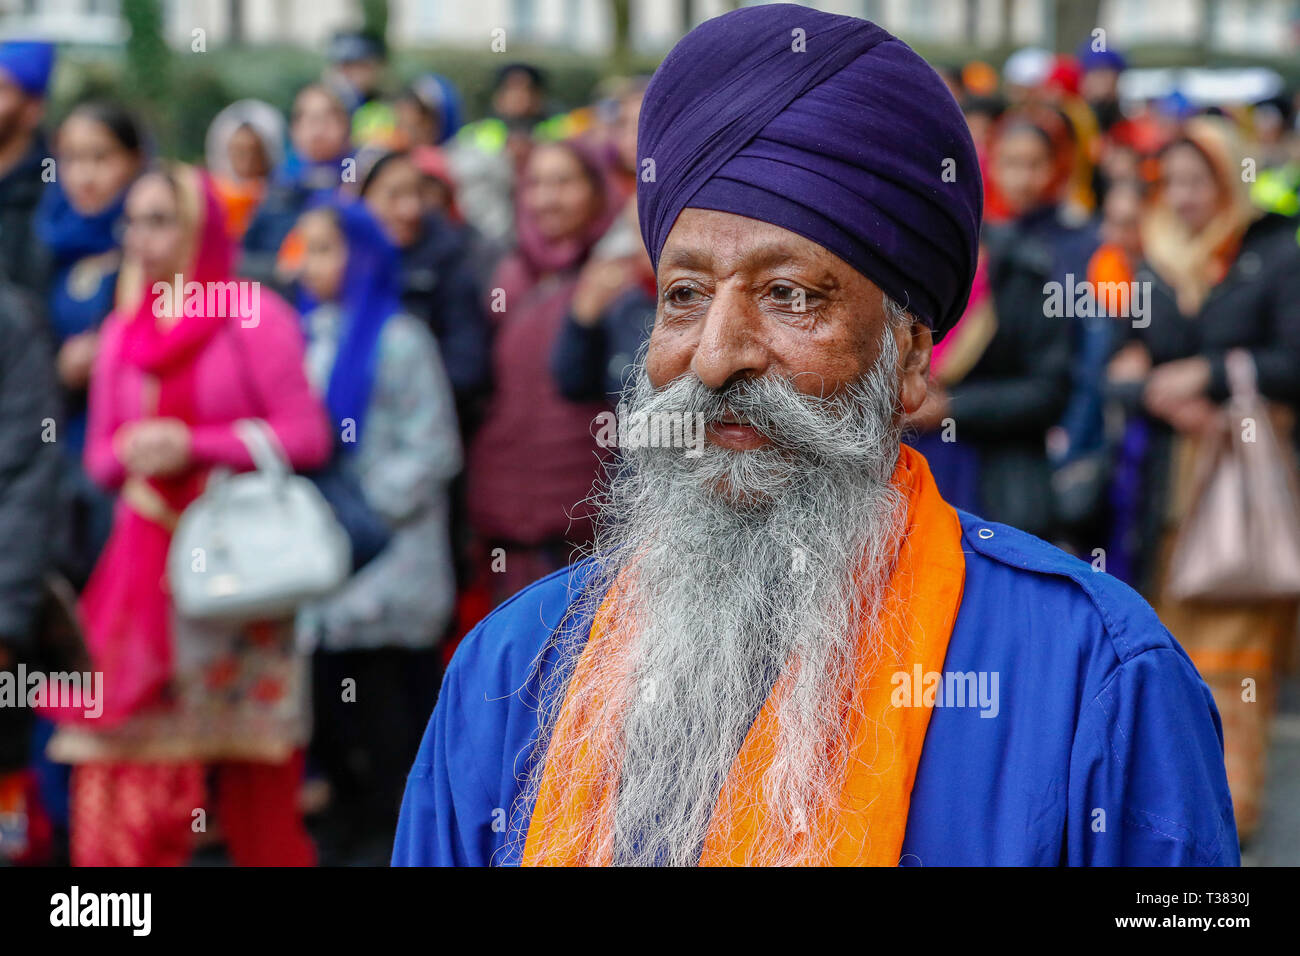 Glasgow, UK. 07th Apr, 2019. Thousands from the Scottish Sikh community gathered in Glasgow to celebrate the annual festival of VAISAKHI which is held every year to celebrate the beginning of the Sikh summer and is marked by a procession through the heart of Glasgow. Vaisakhi is celebrated each year to also commemorate the creation of the Sikh nation in 1699 and is taken as a reminder for all Sikhs to preserve human rights, promote equality, practice compassion and implement selfless service in their daily lives Credit: Findlay/Alamy Live News Stock Photo